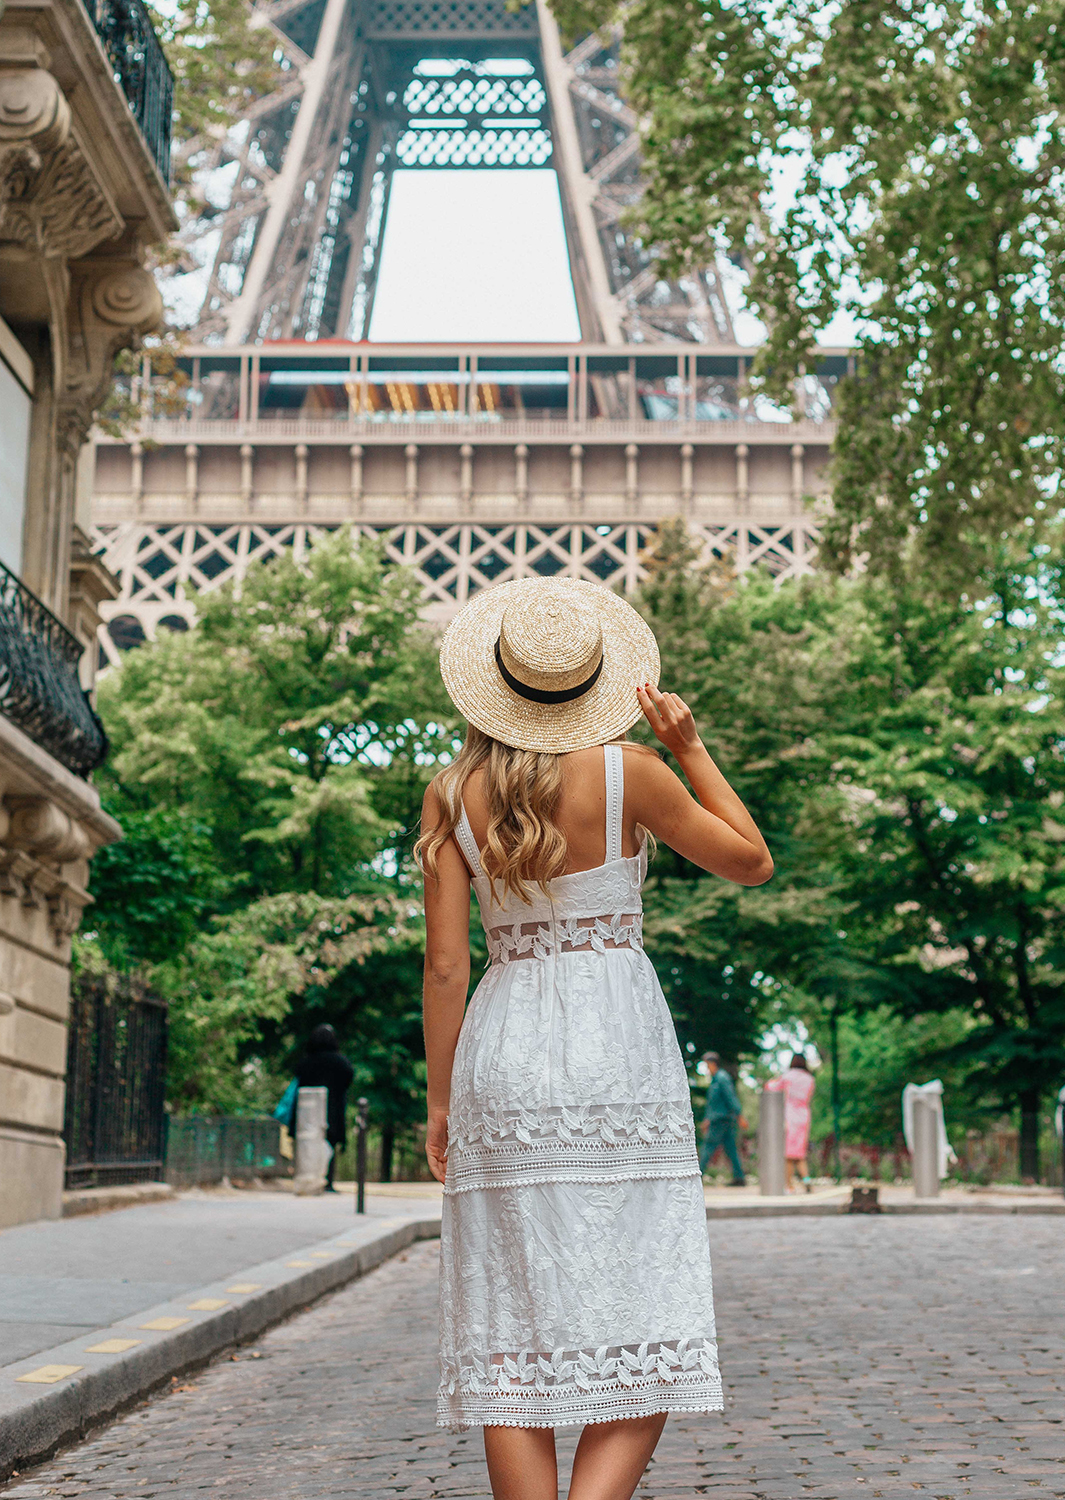 Best places to take pictures in Paris